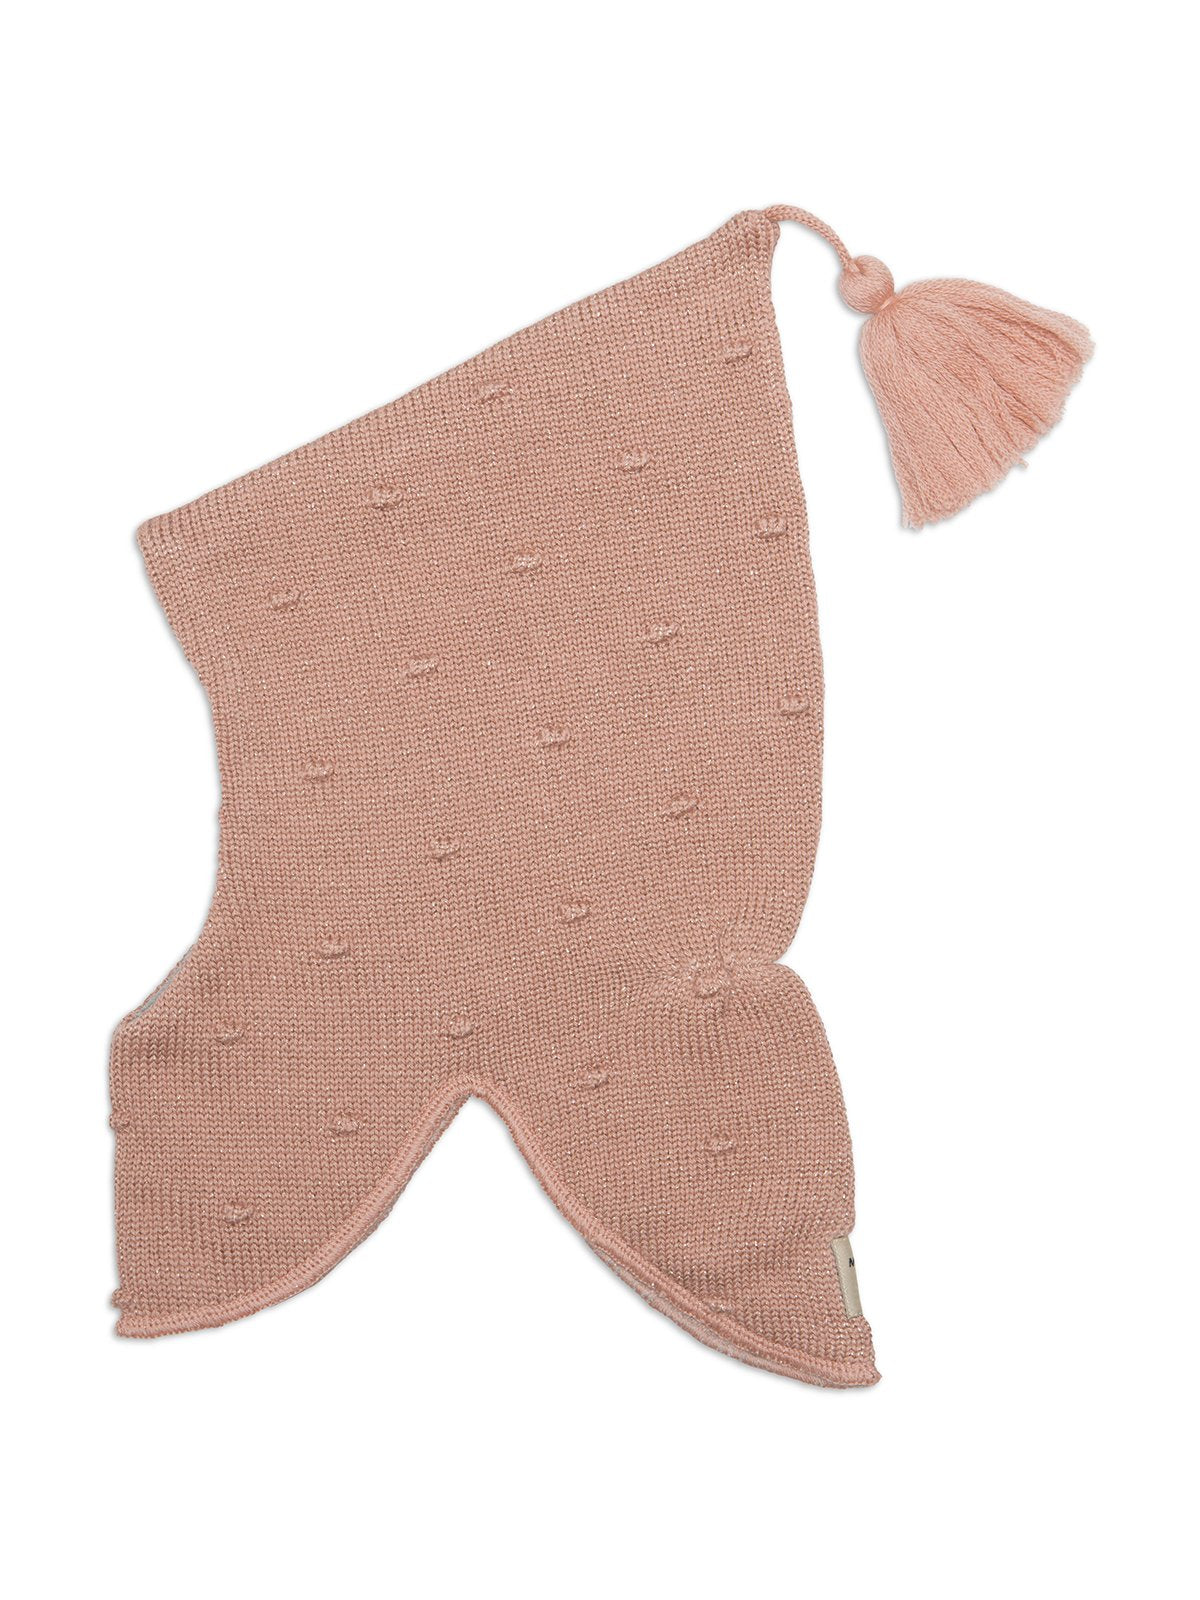 Juels elephant hood - Cameo Rose Brown